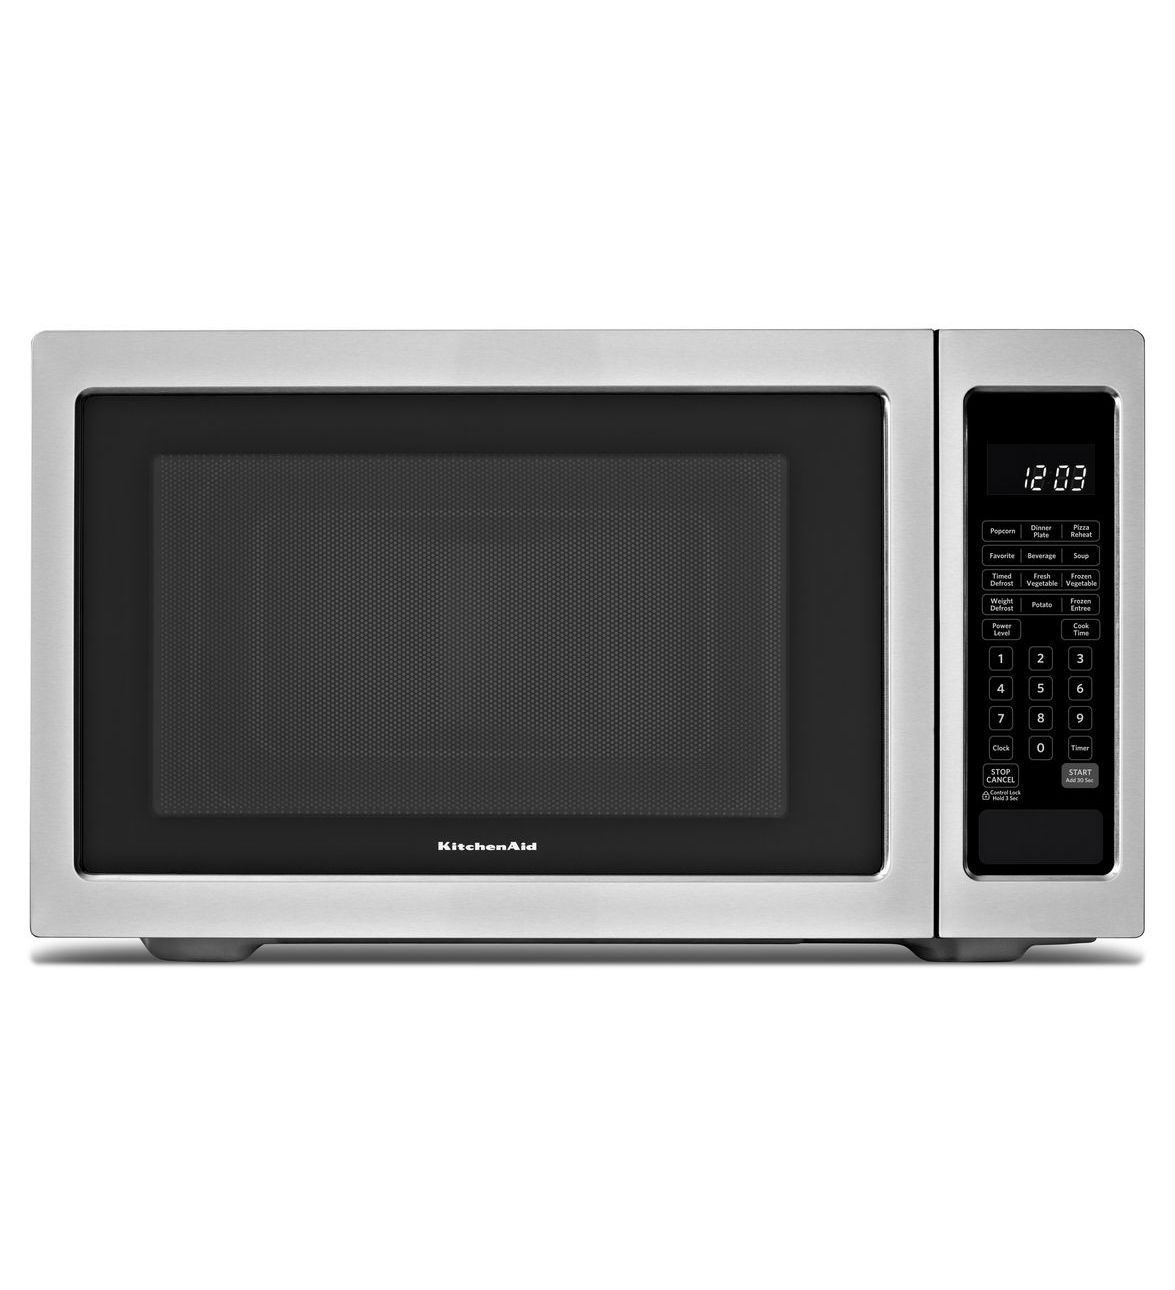 Kitchenaid 1200 Watt Countertop Microwave Oven Architect Series Ii Kcms1655bss Stainless Steel Countertop